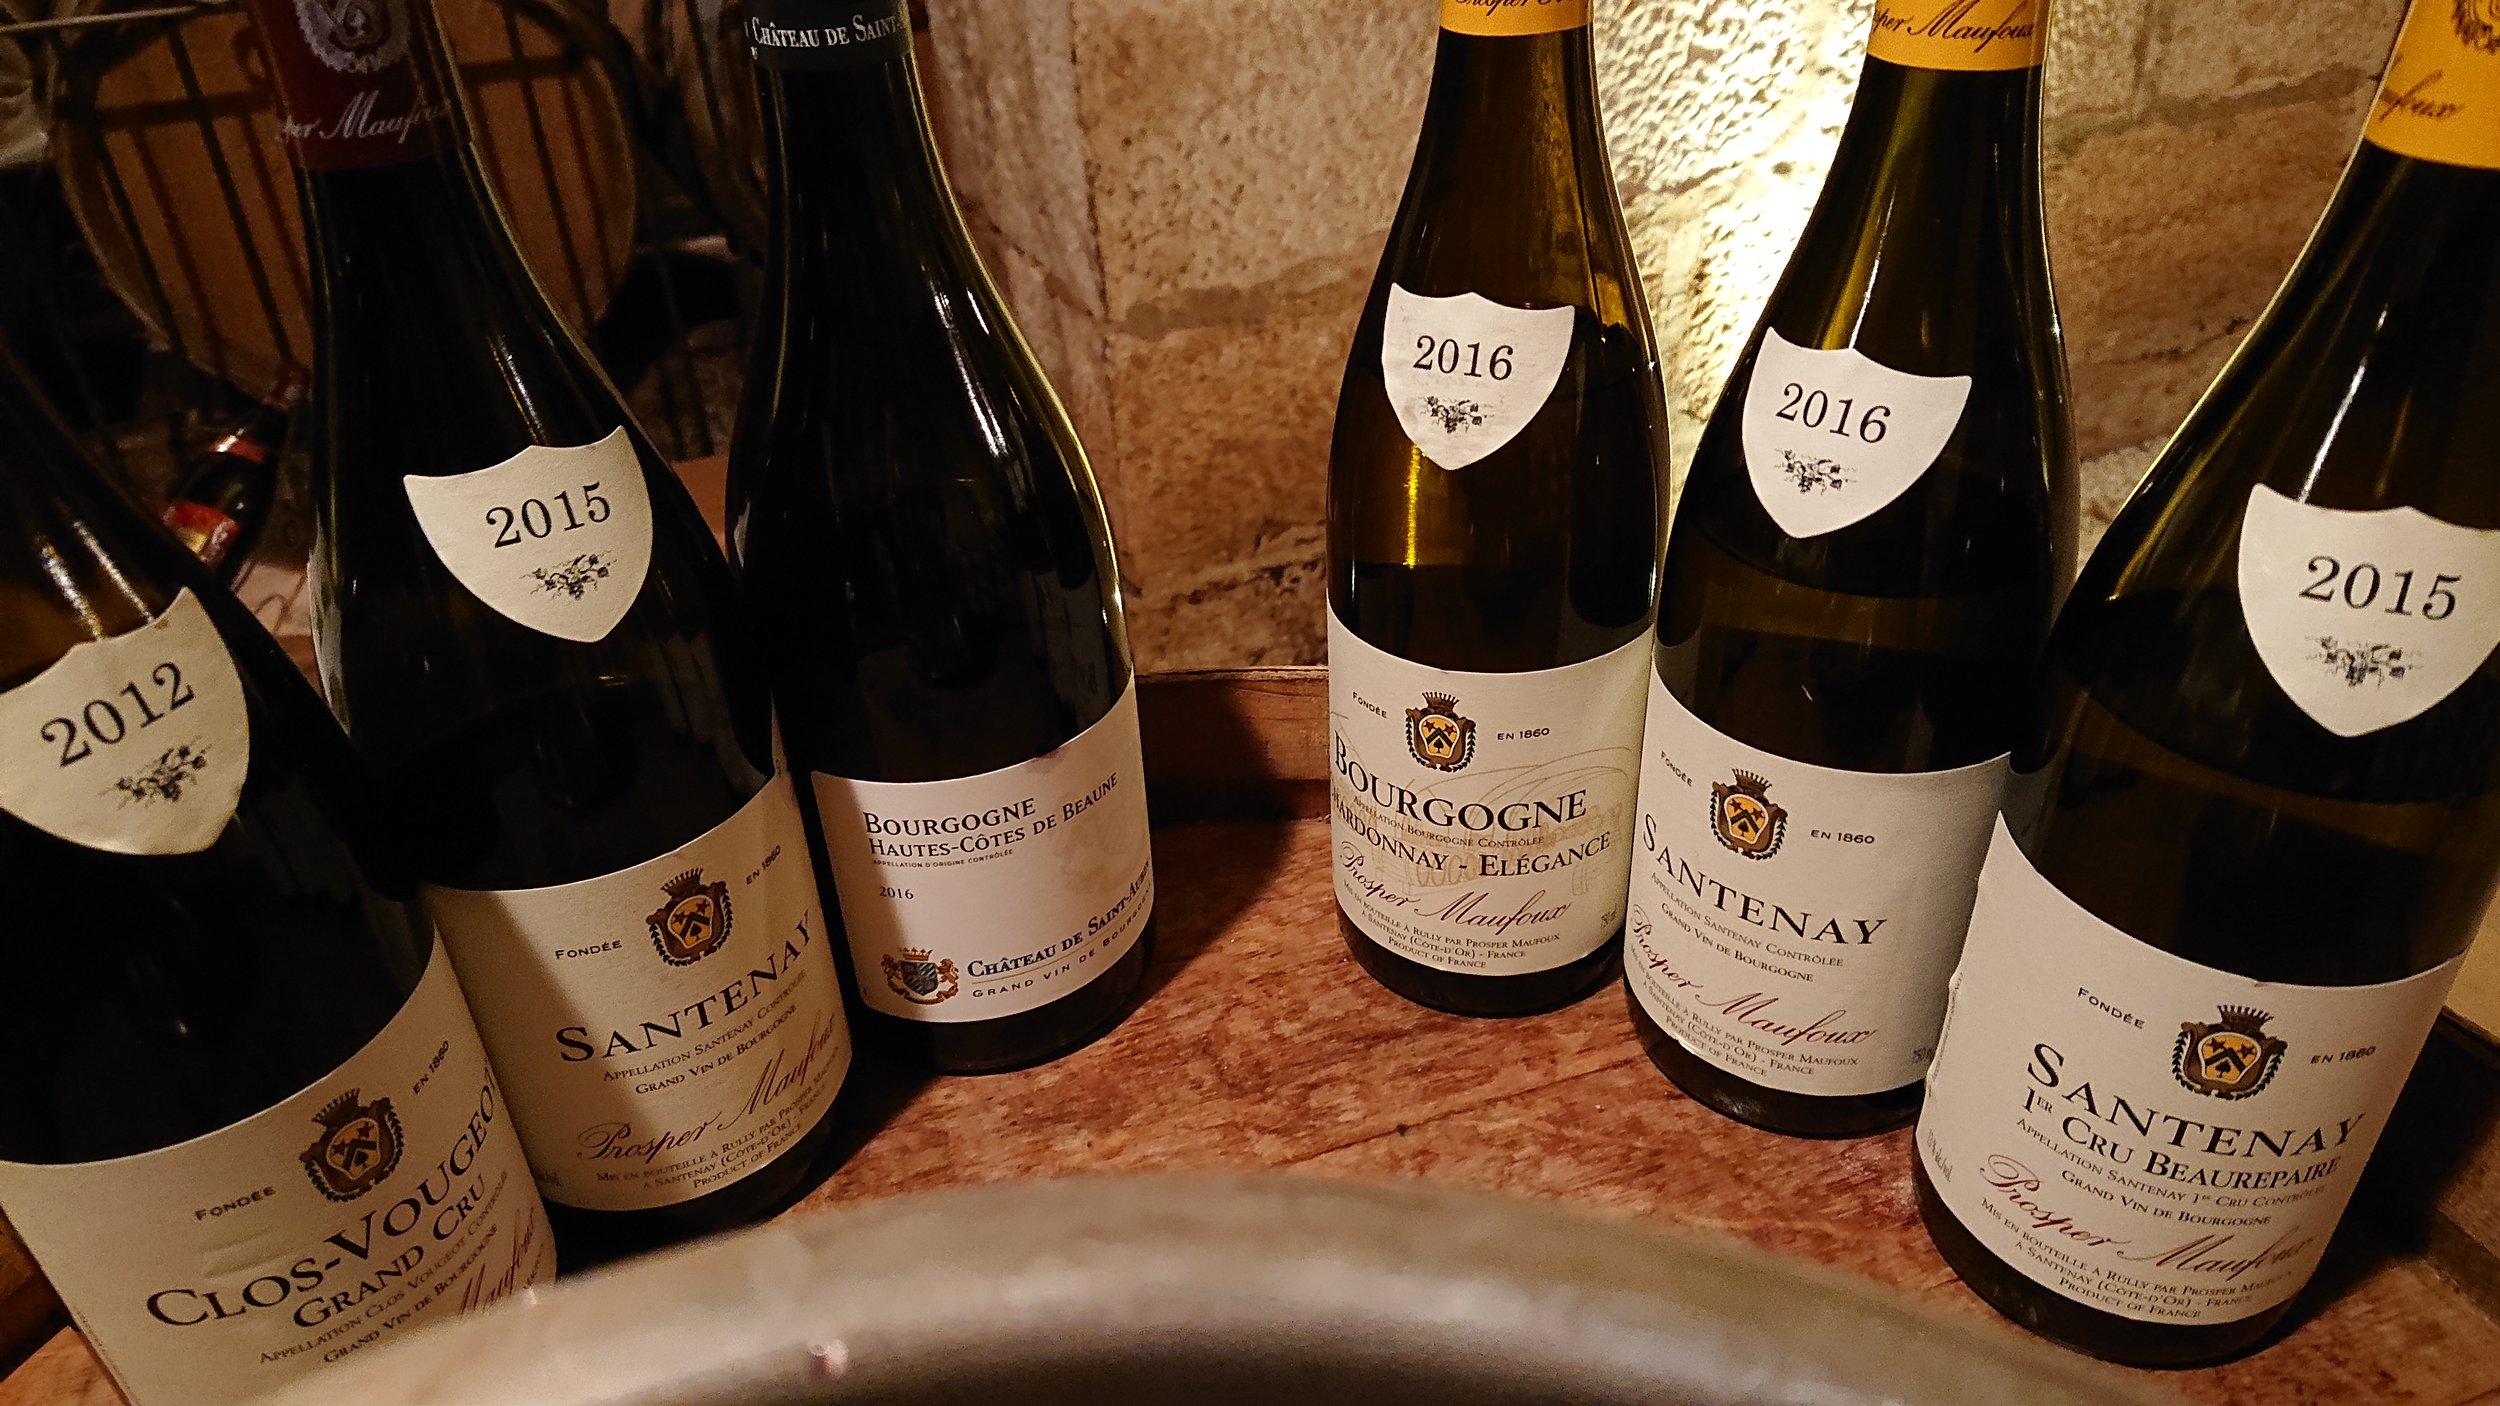 Burgundy-France-learning-french-support-local-magazine-wine.JPG